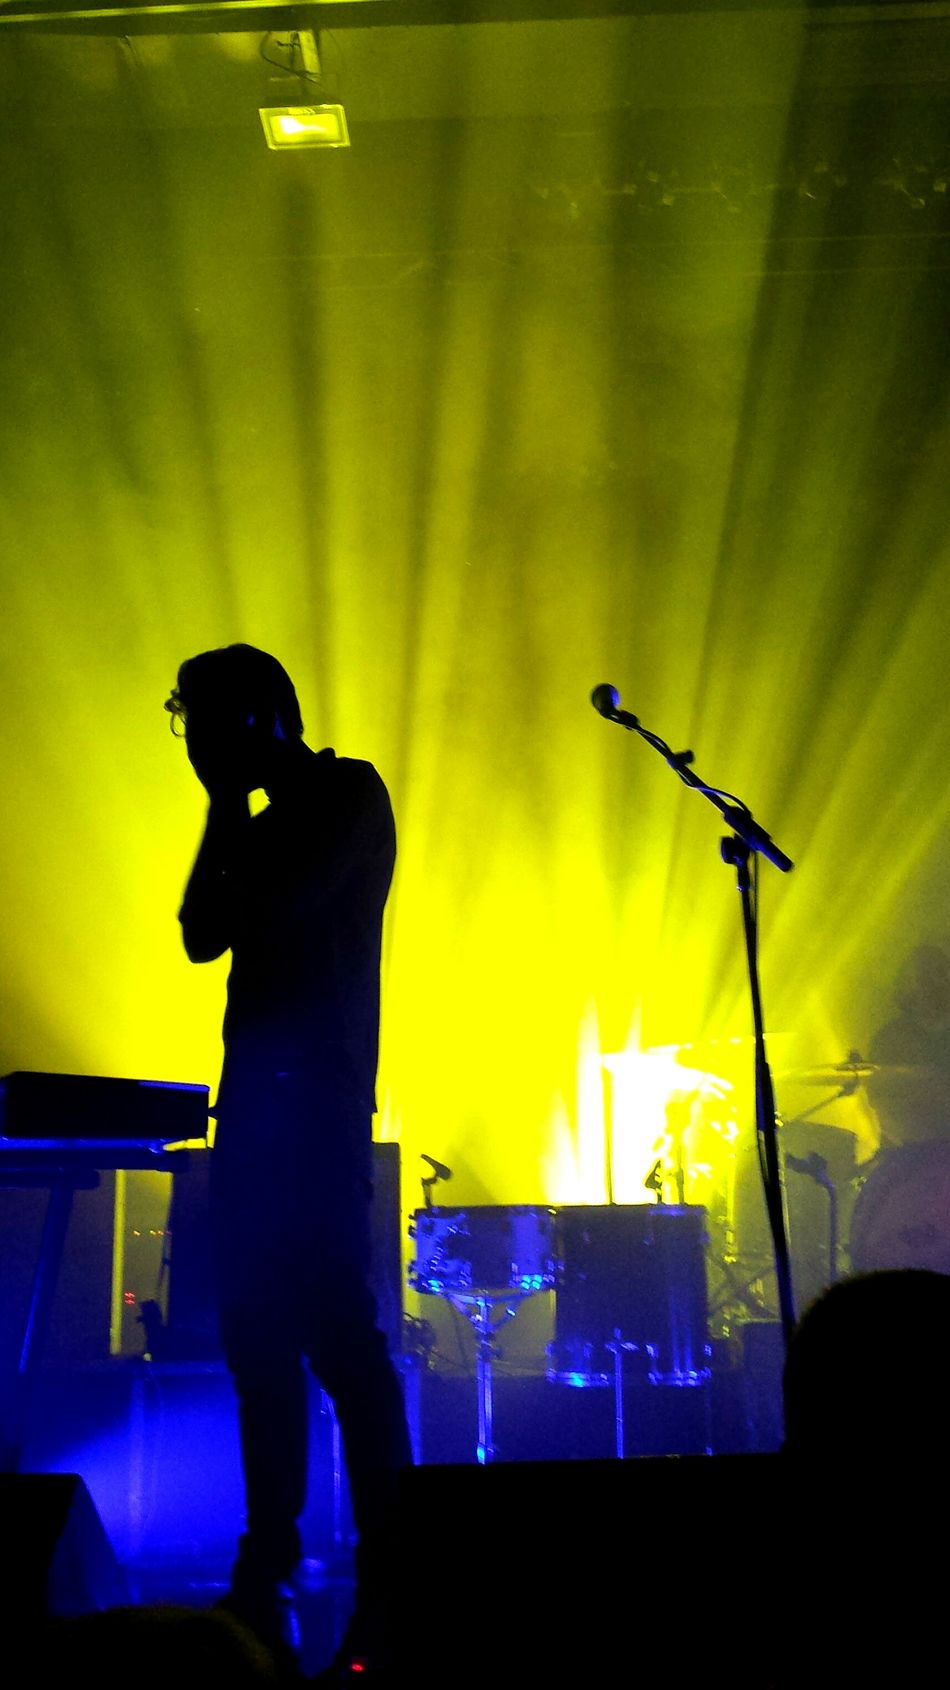 Konzert - The Boxer Rebellion in Berlin Musik Music Concert Concert Photography Nightlife Berlin Indoors  Lights Silhoutte Photography Silhouette Shadow Concert Hall  Columbiahalle